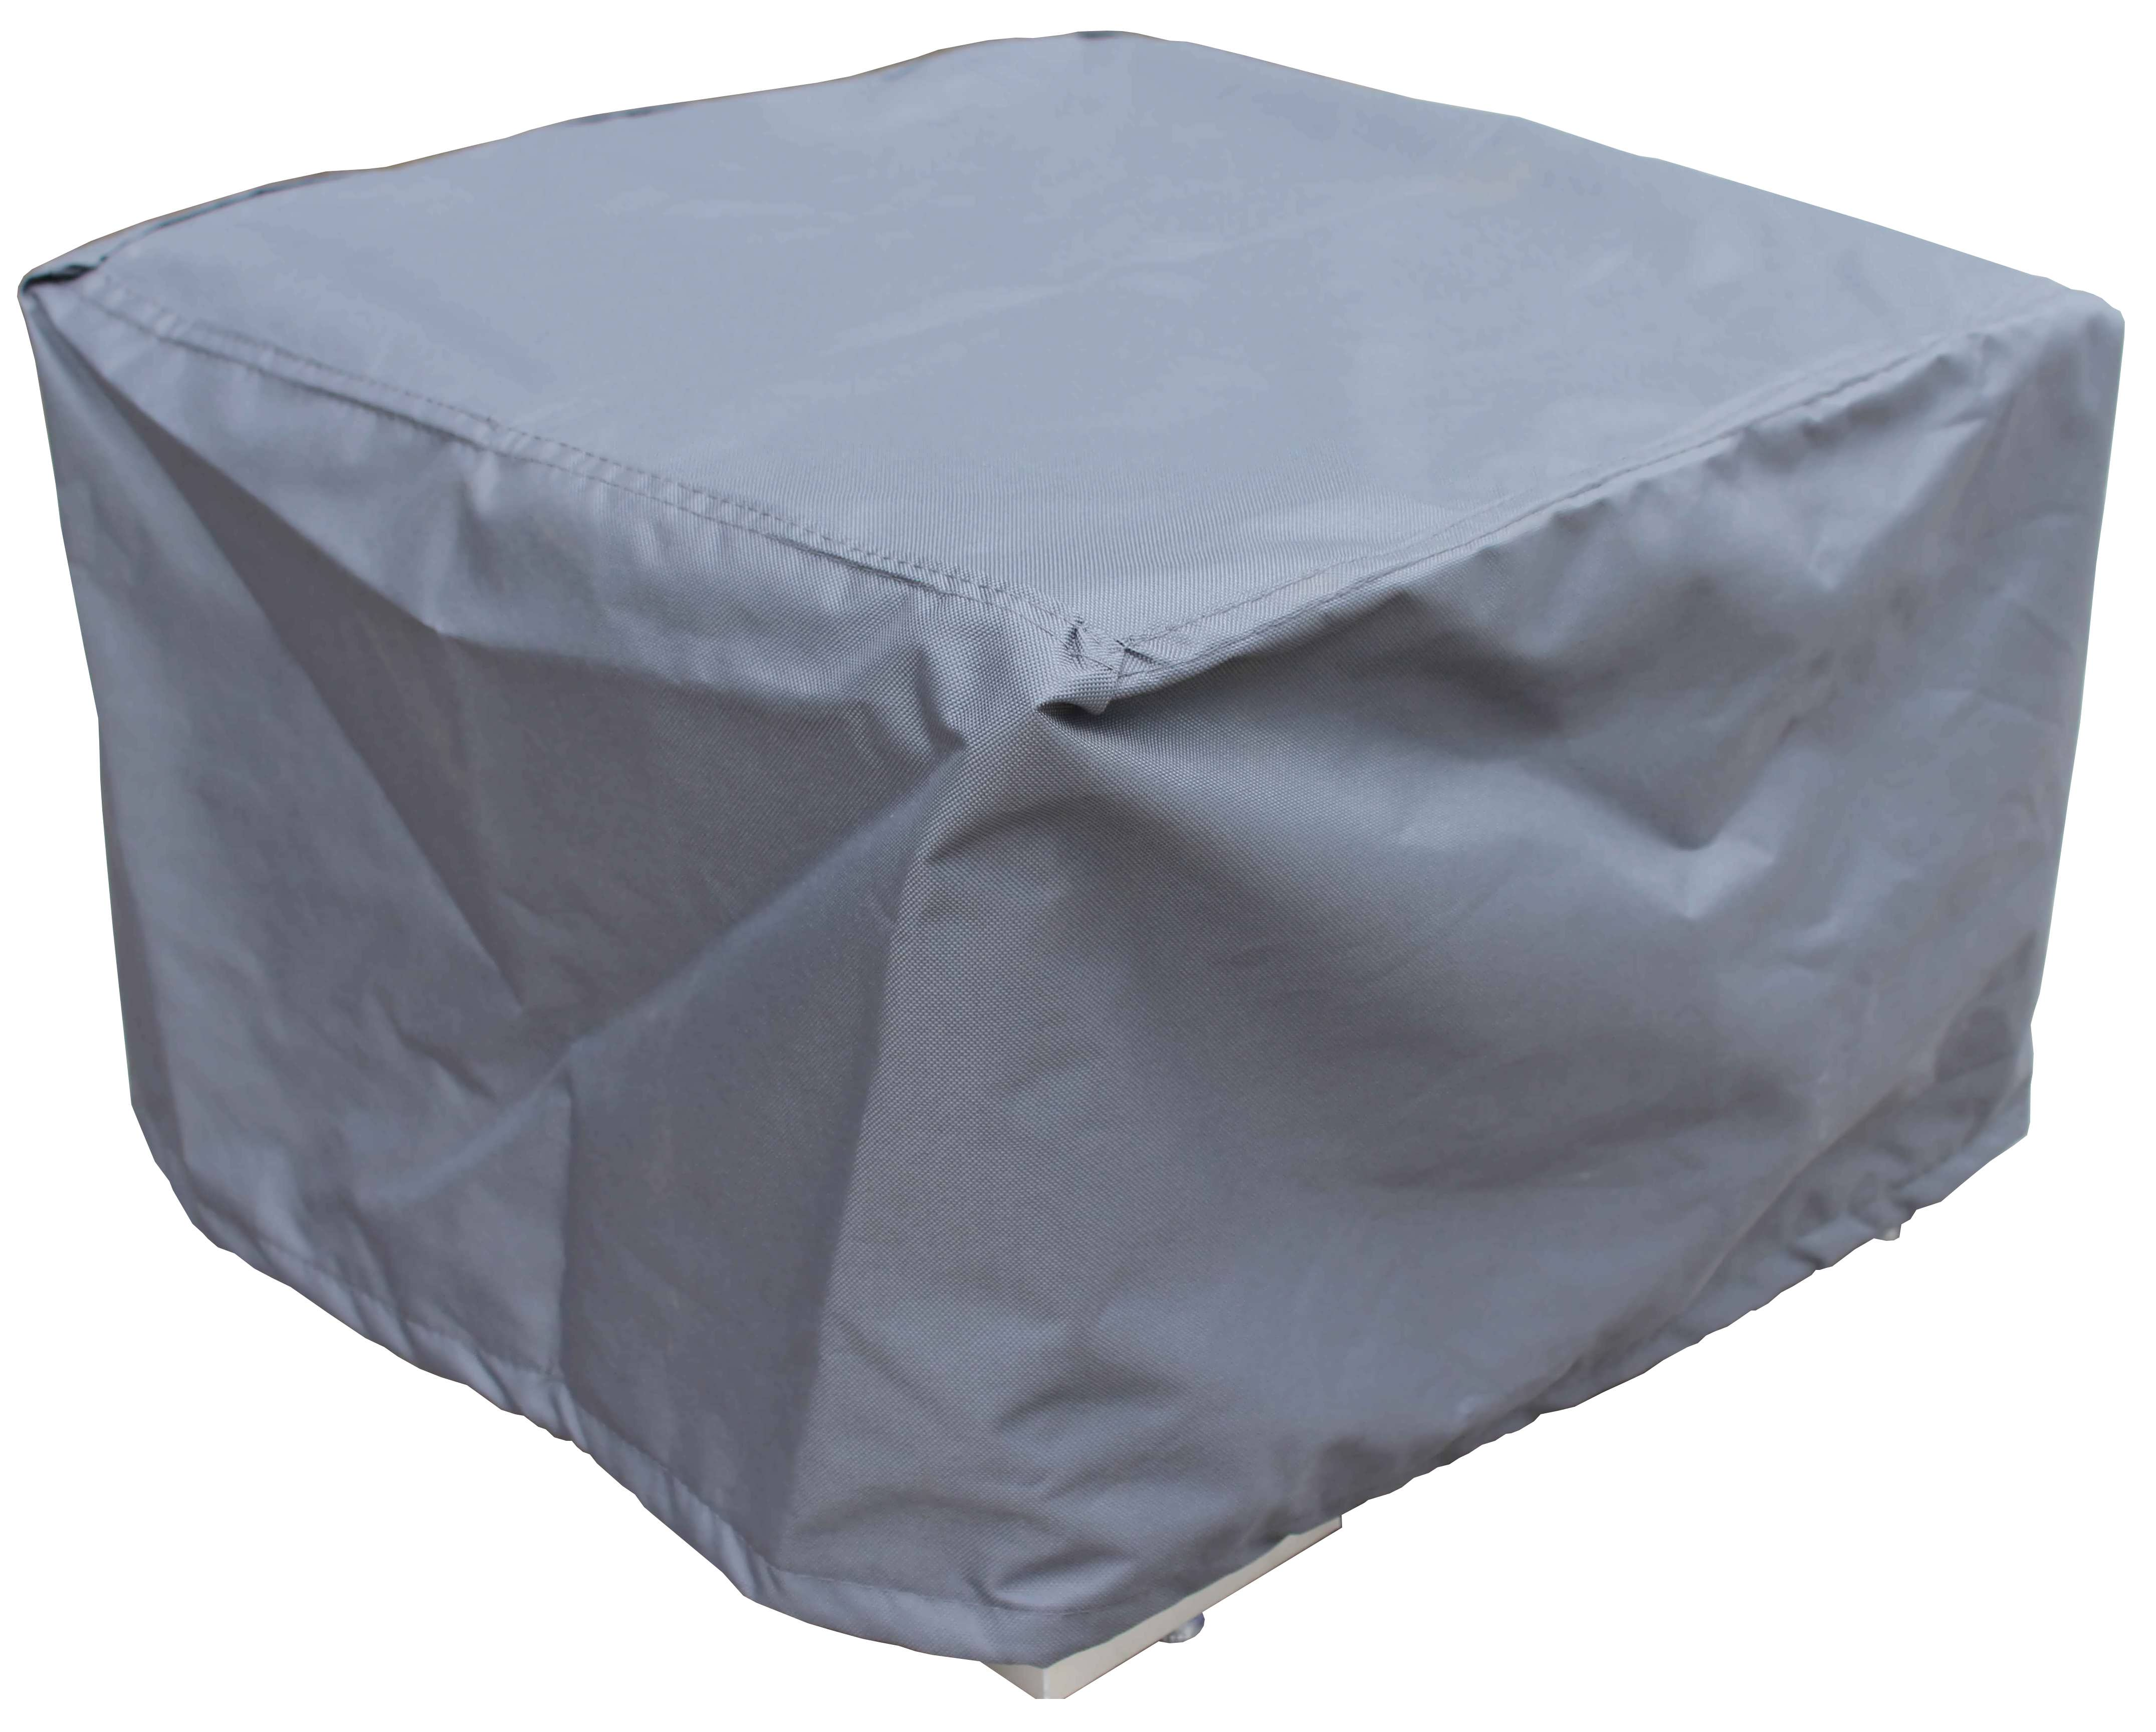 Brilliant Outdoor Furniture Covers Table 4302 x 3456 · 401 kB · jpeg